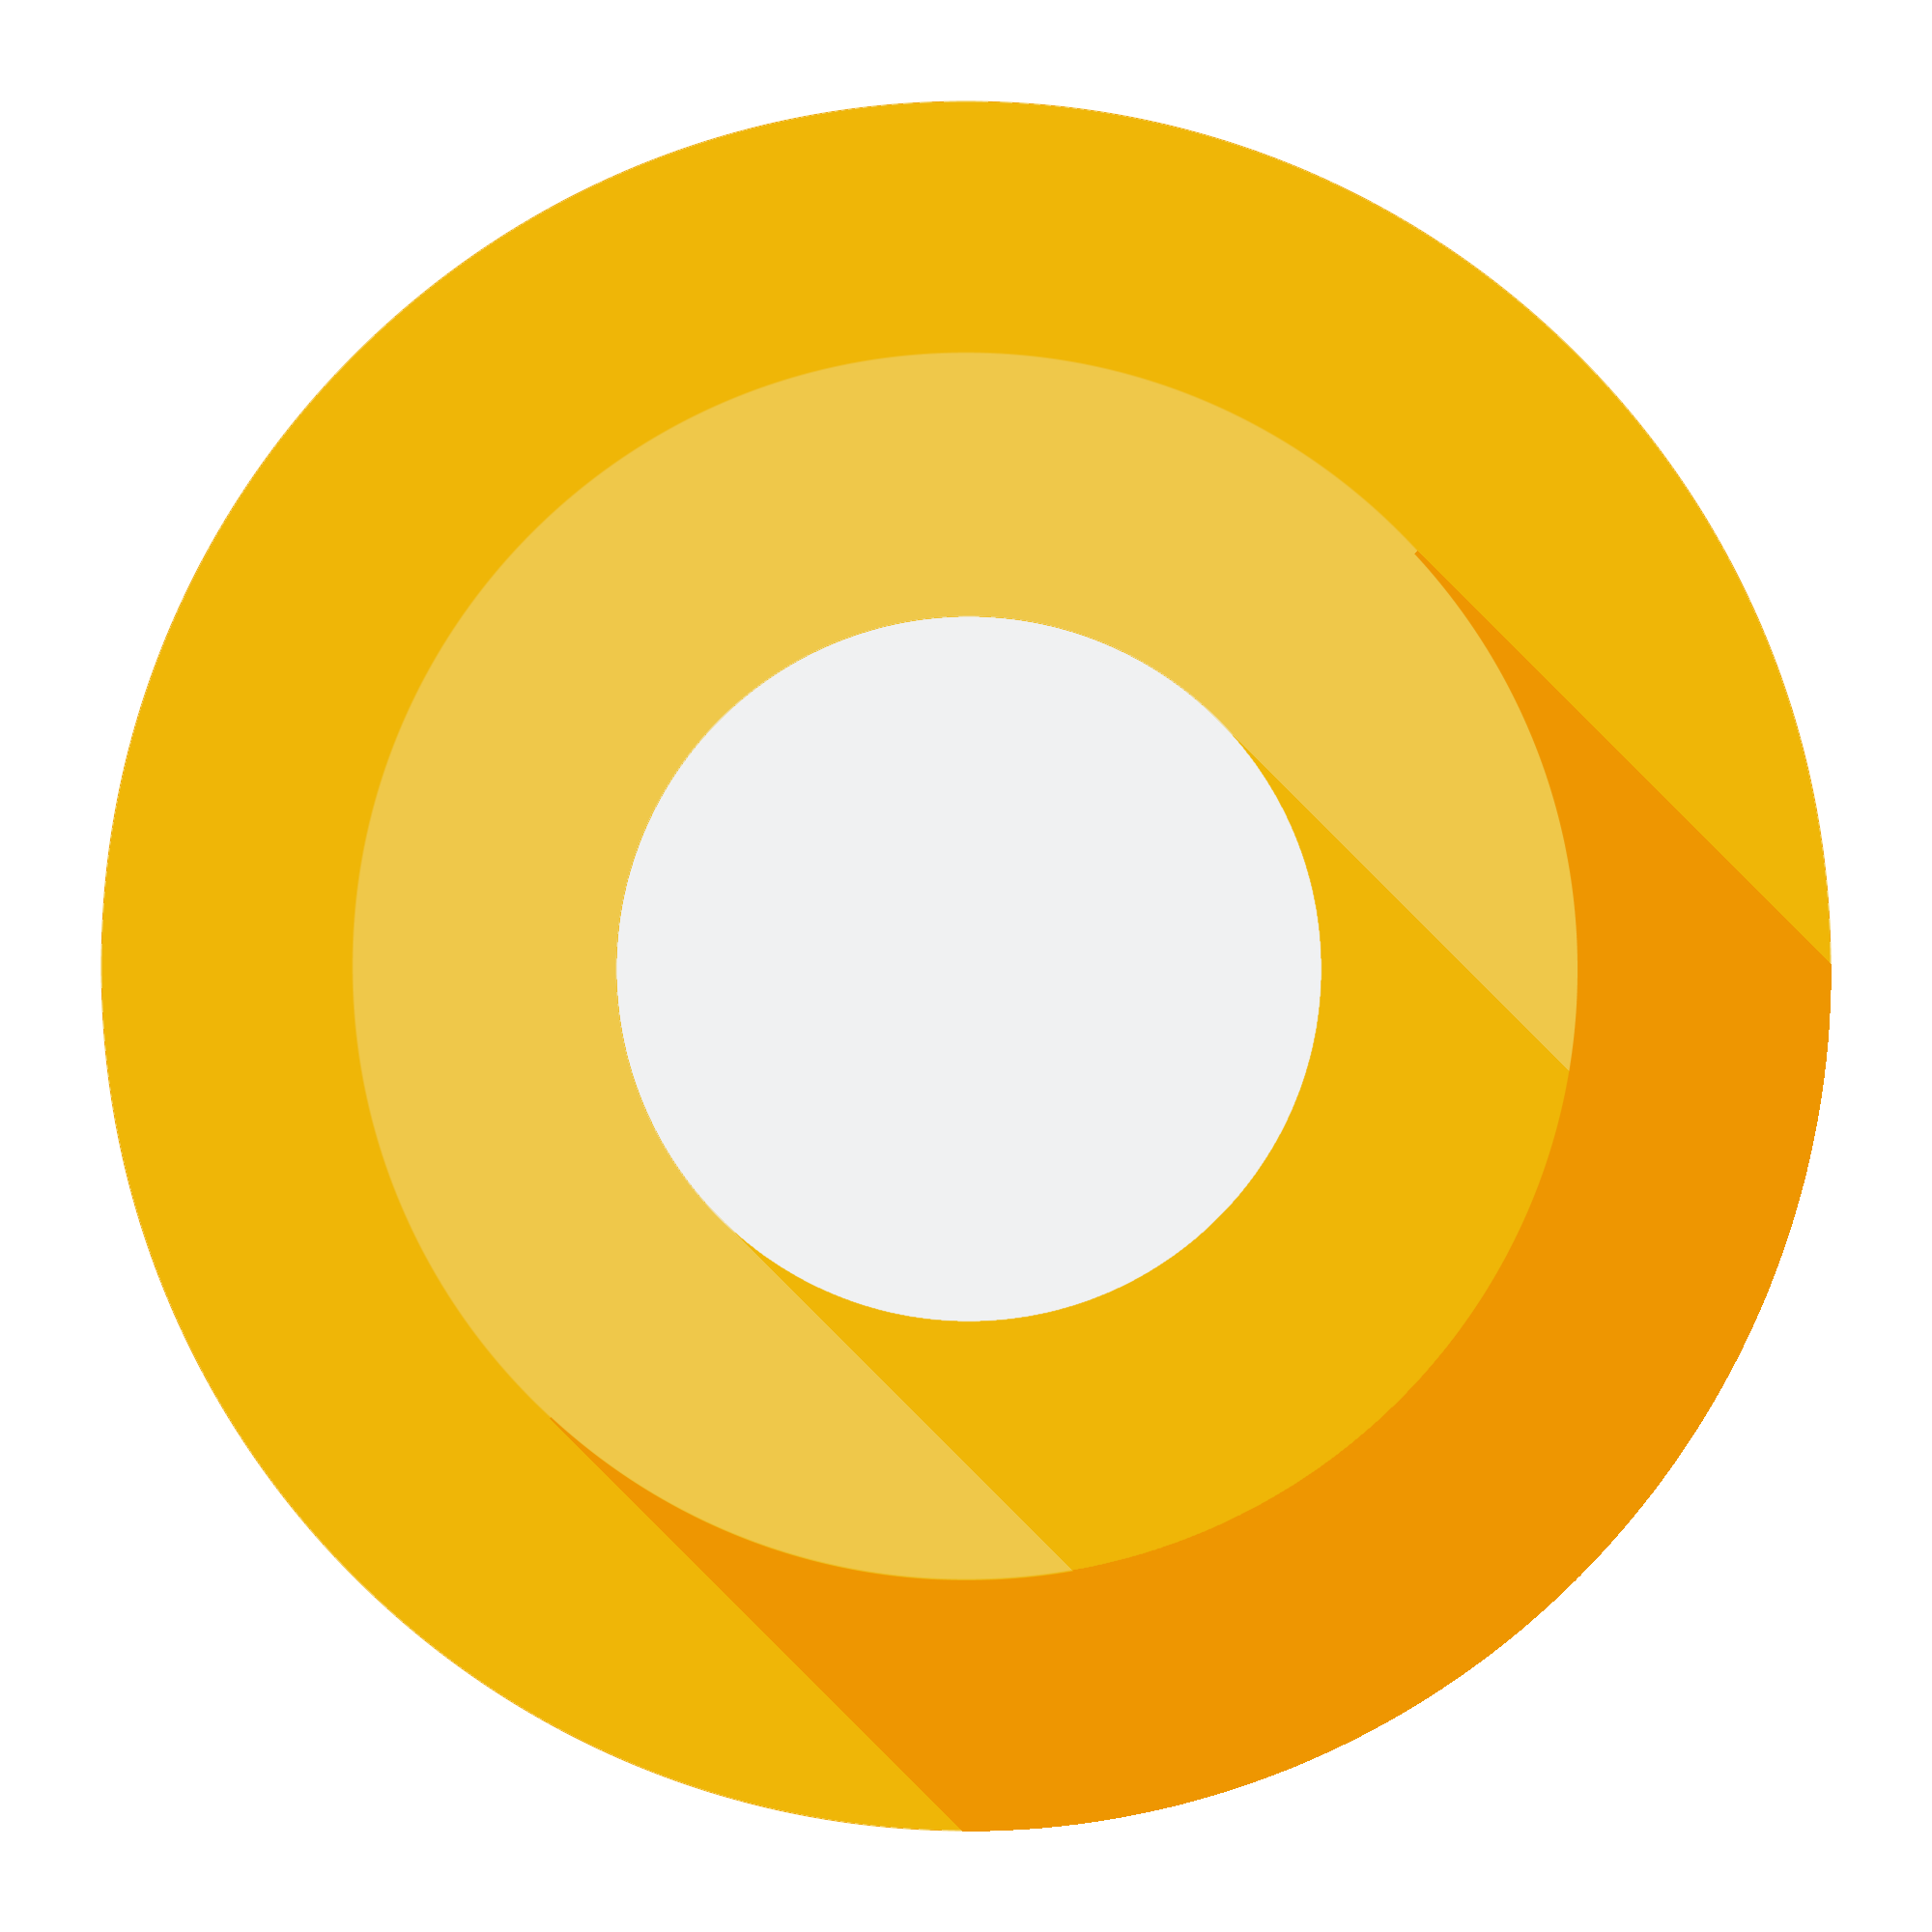 File:Android O Preview Logo.png.